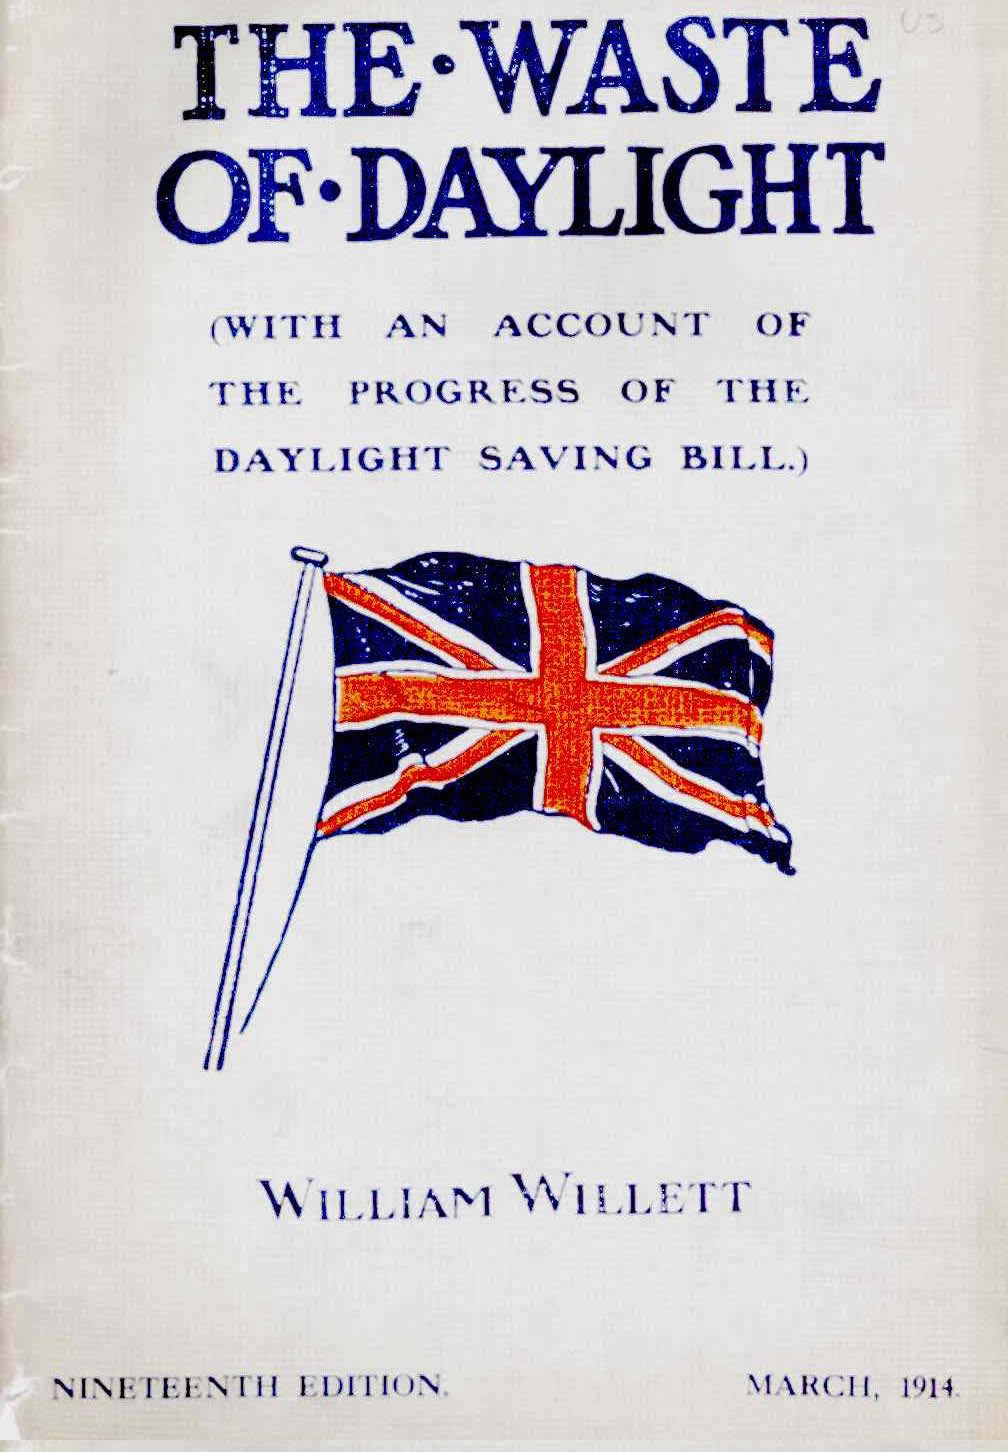 Cover of William Willett's Book The Waste of Daylight